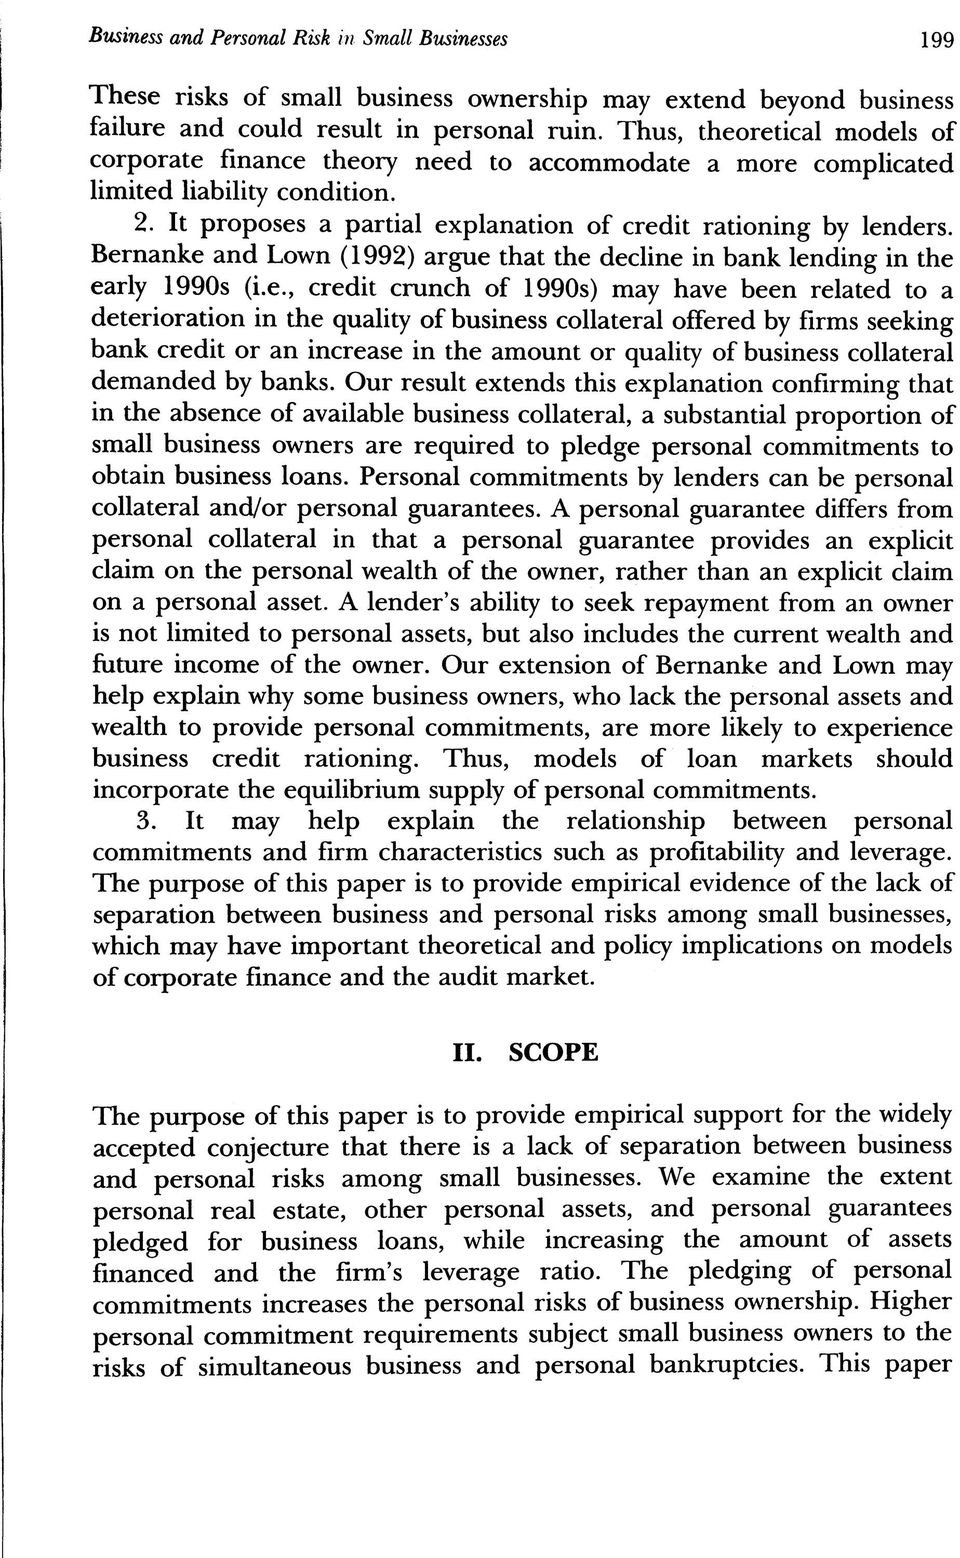 Bernanke and Lown (1992) argue that the decline in bank lending in the early 1990s (i.e., credit crunch of 1990s) may have been related to a deterioration in the quality of business collateral